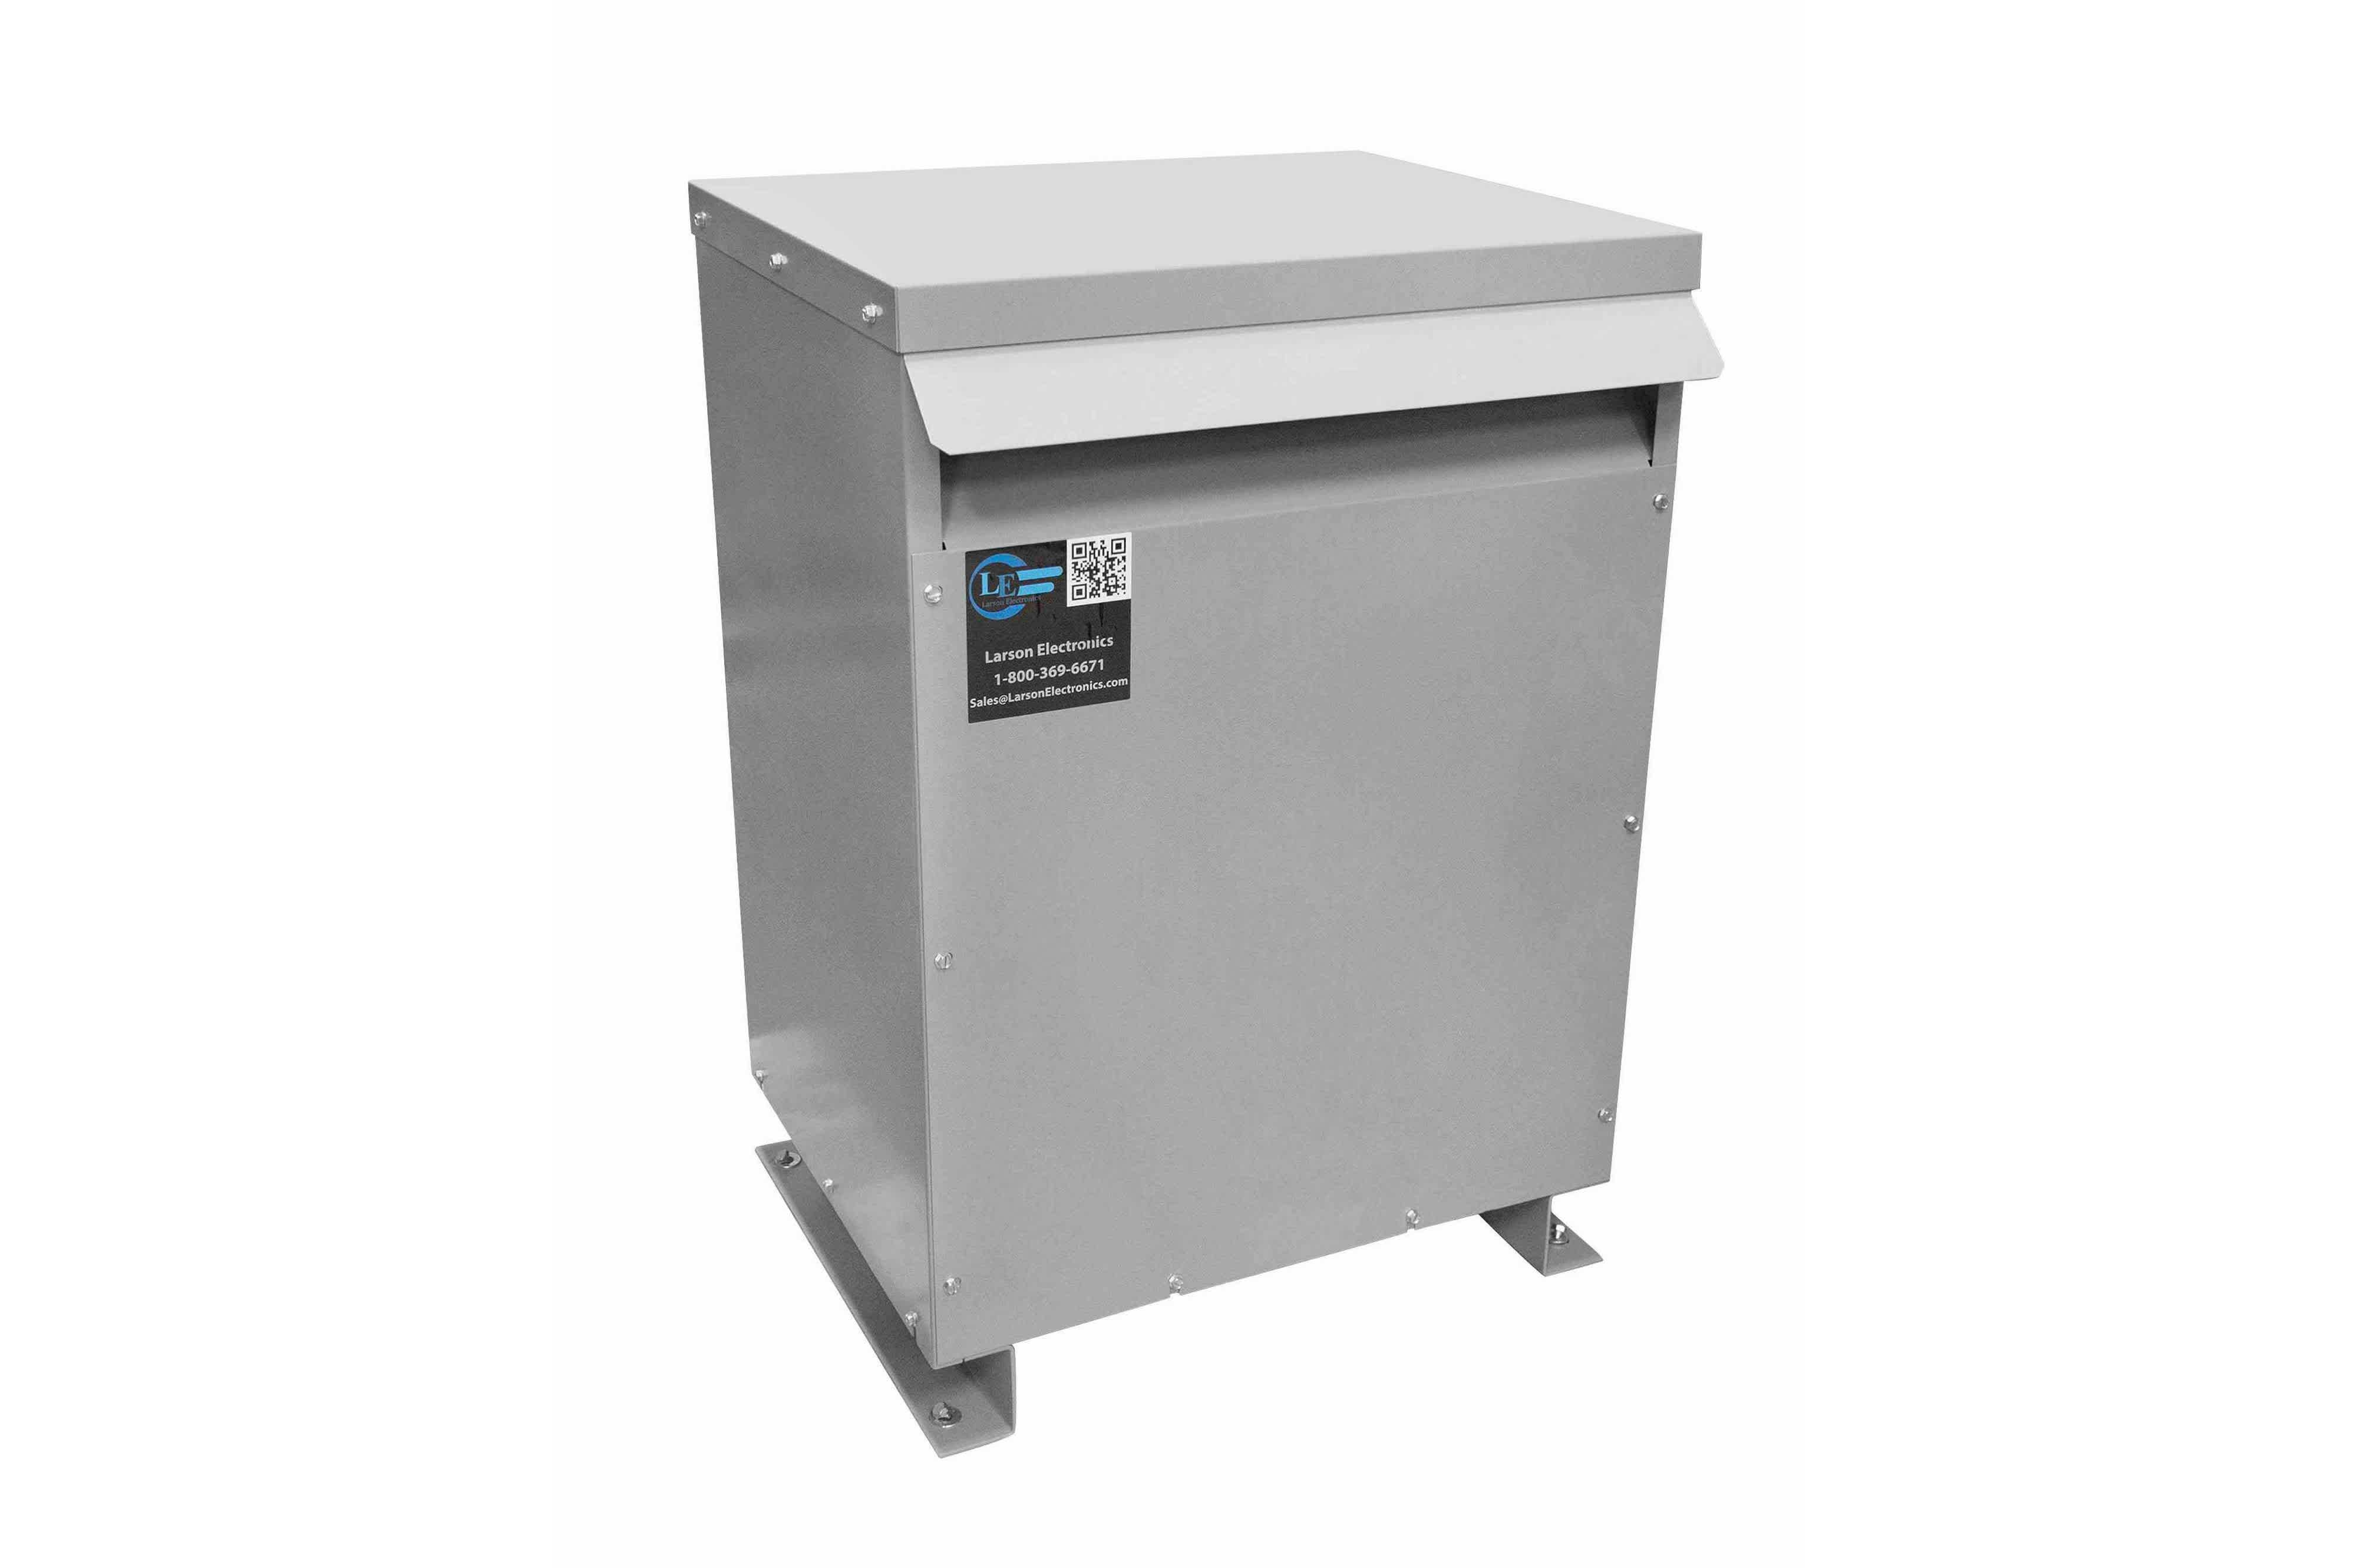 15 kVA 3PH DOE Transformer, 230V Delta Primary, 480Y/277 Wye-N Secondary, N3R, Ventilated, 60 Hz